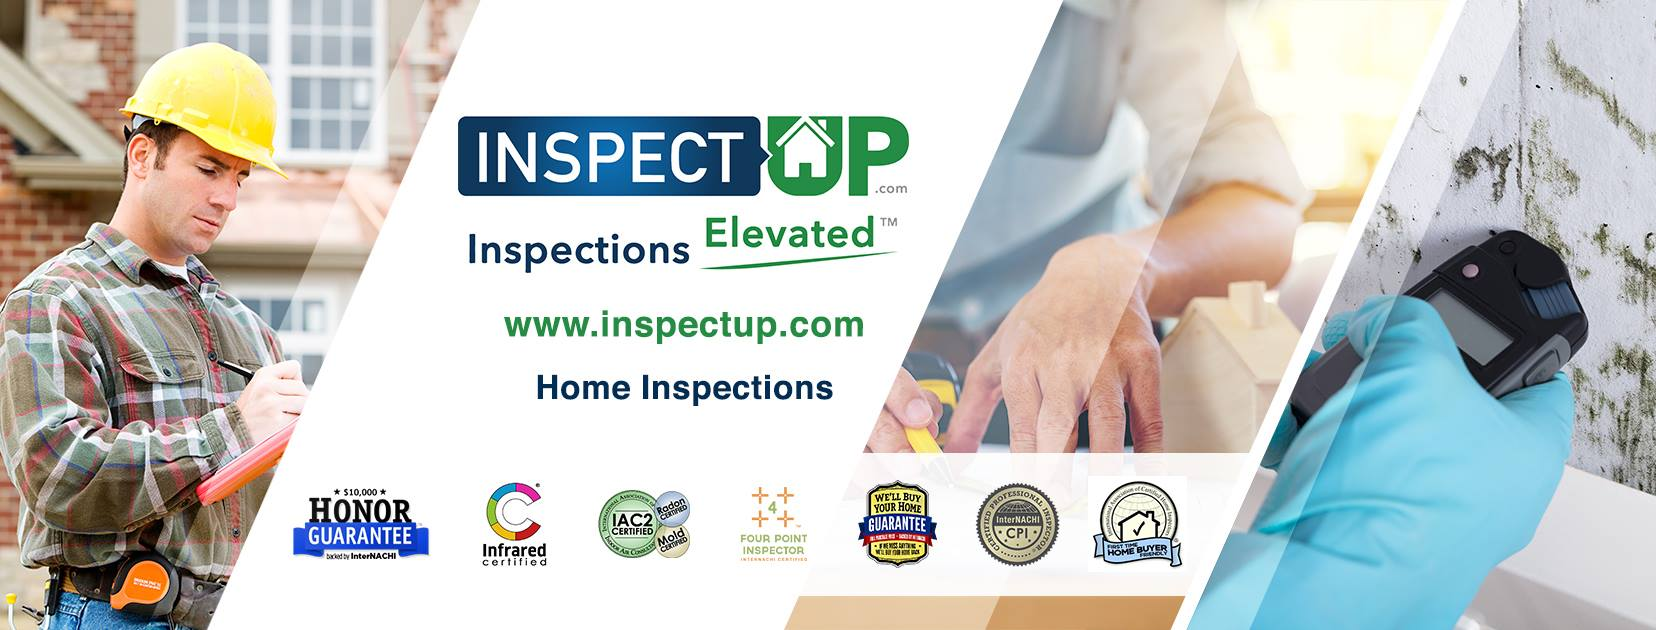 InspectUp Home Inspections reviews | Home Inspectors at 7785 Crestwood Cir - Eagle Mountain UT